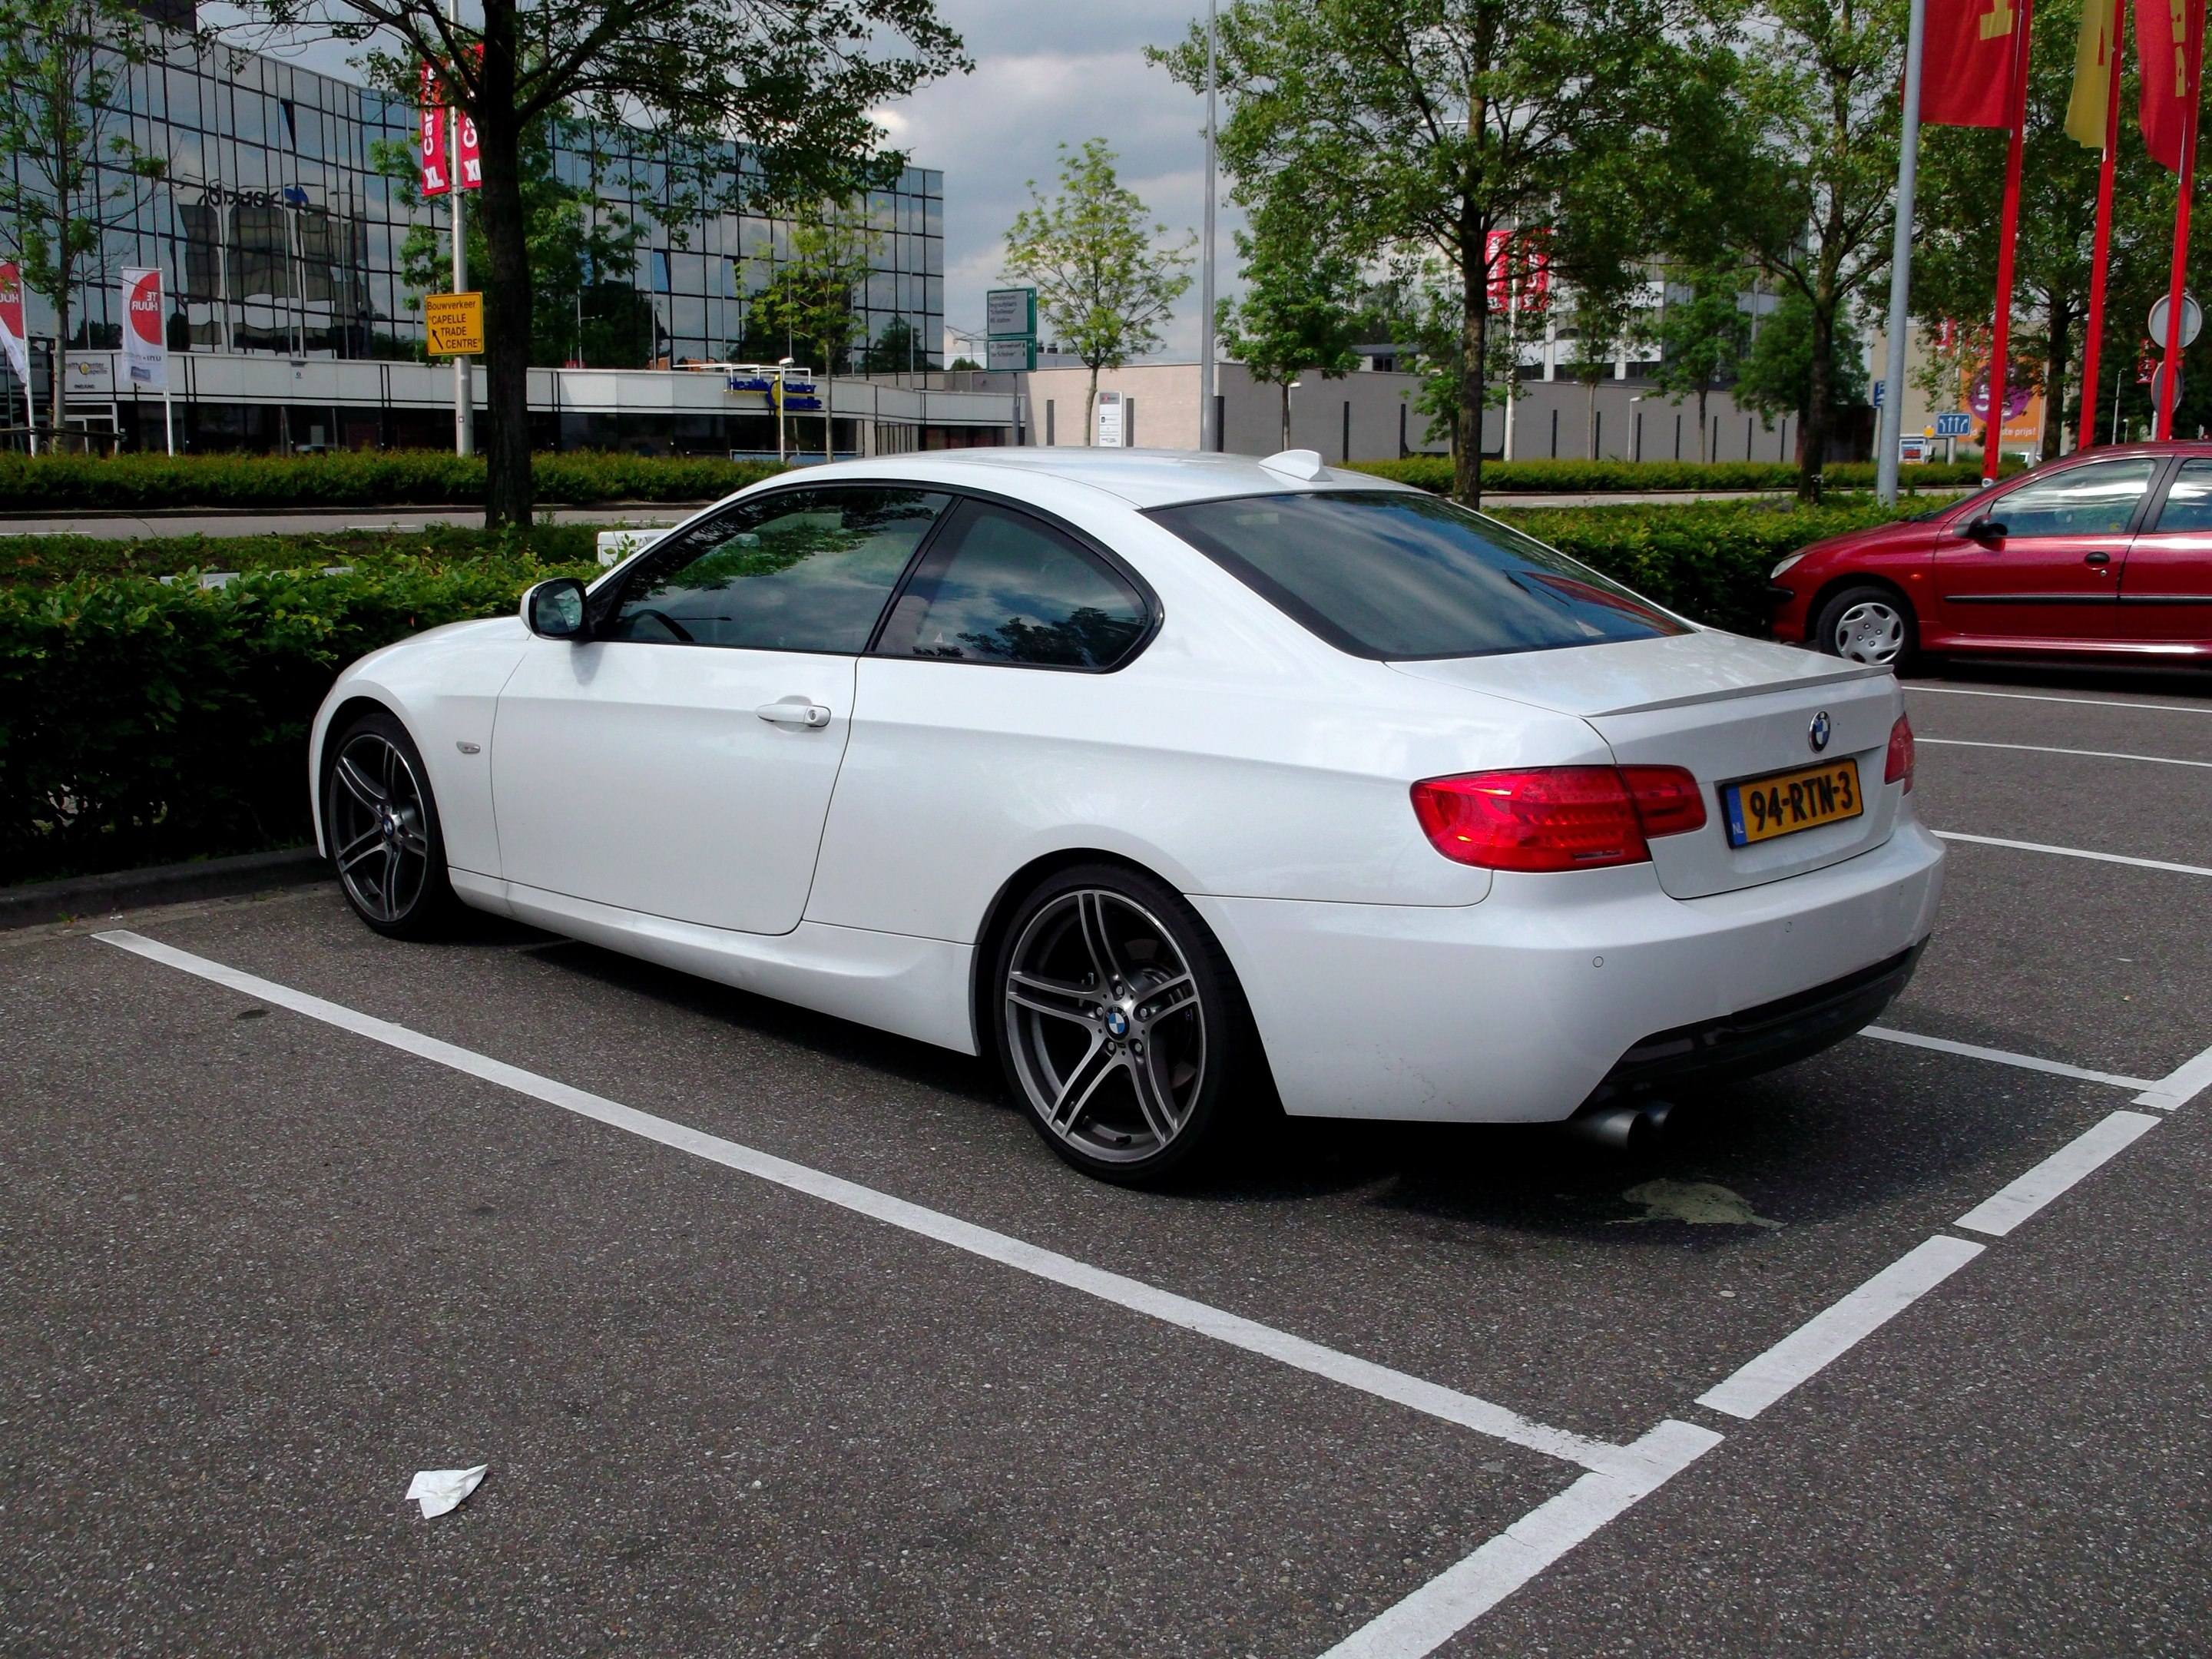 BMW 320i - 2011 | Flickr - Photo Sharing!